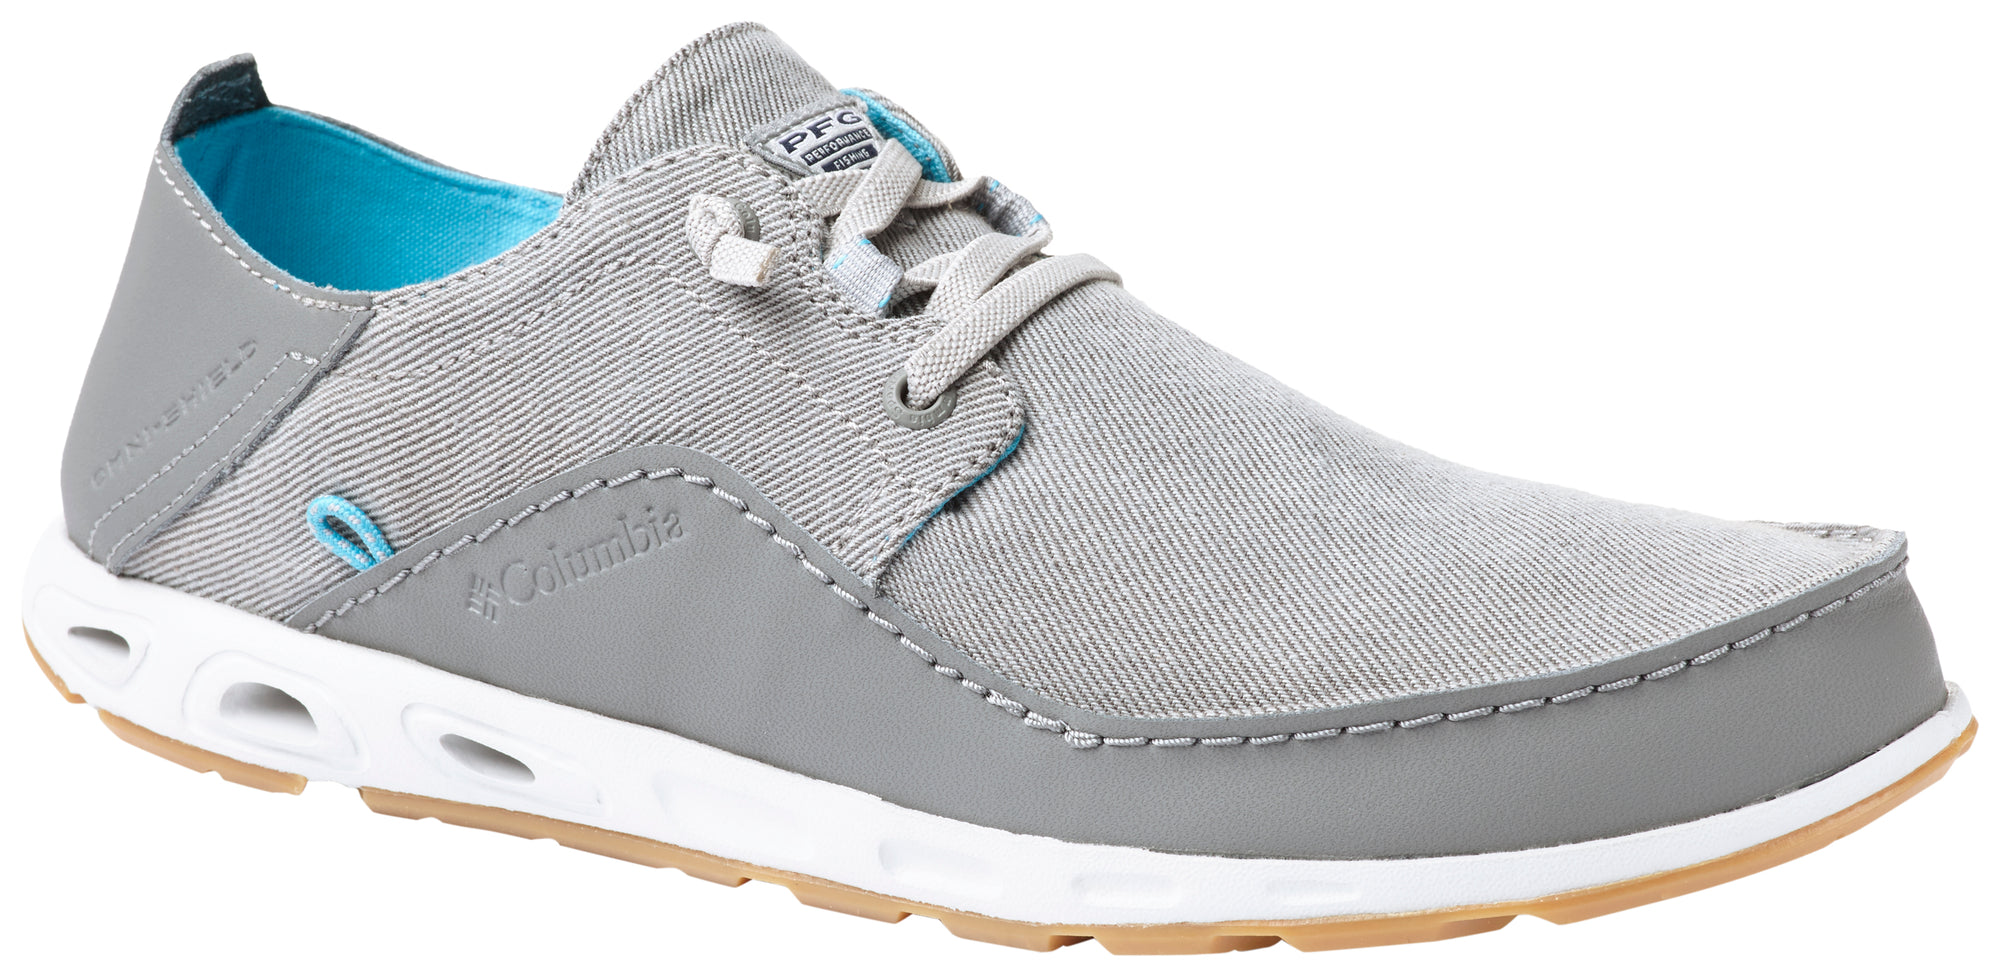 Columbia Vent Loco Relaxed II PFG Shoe